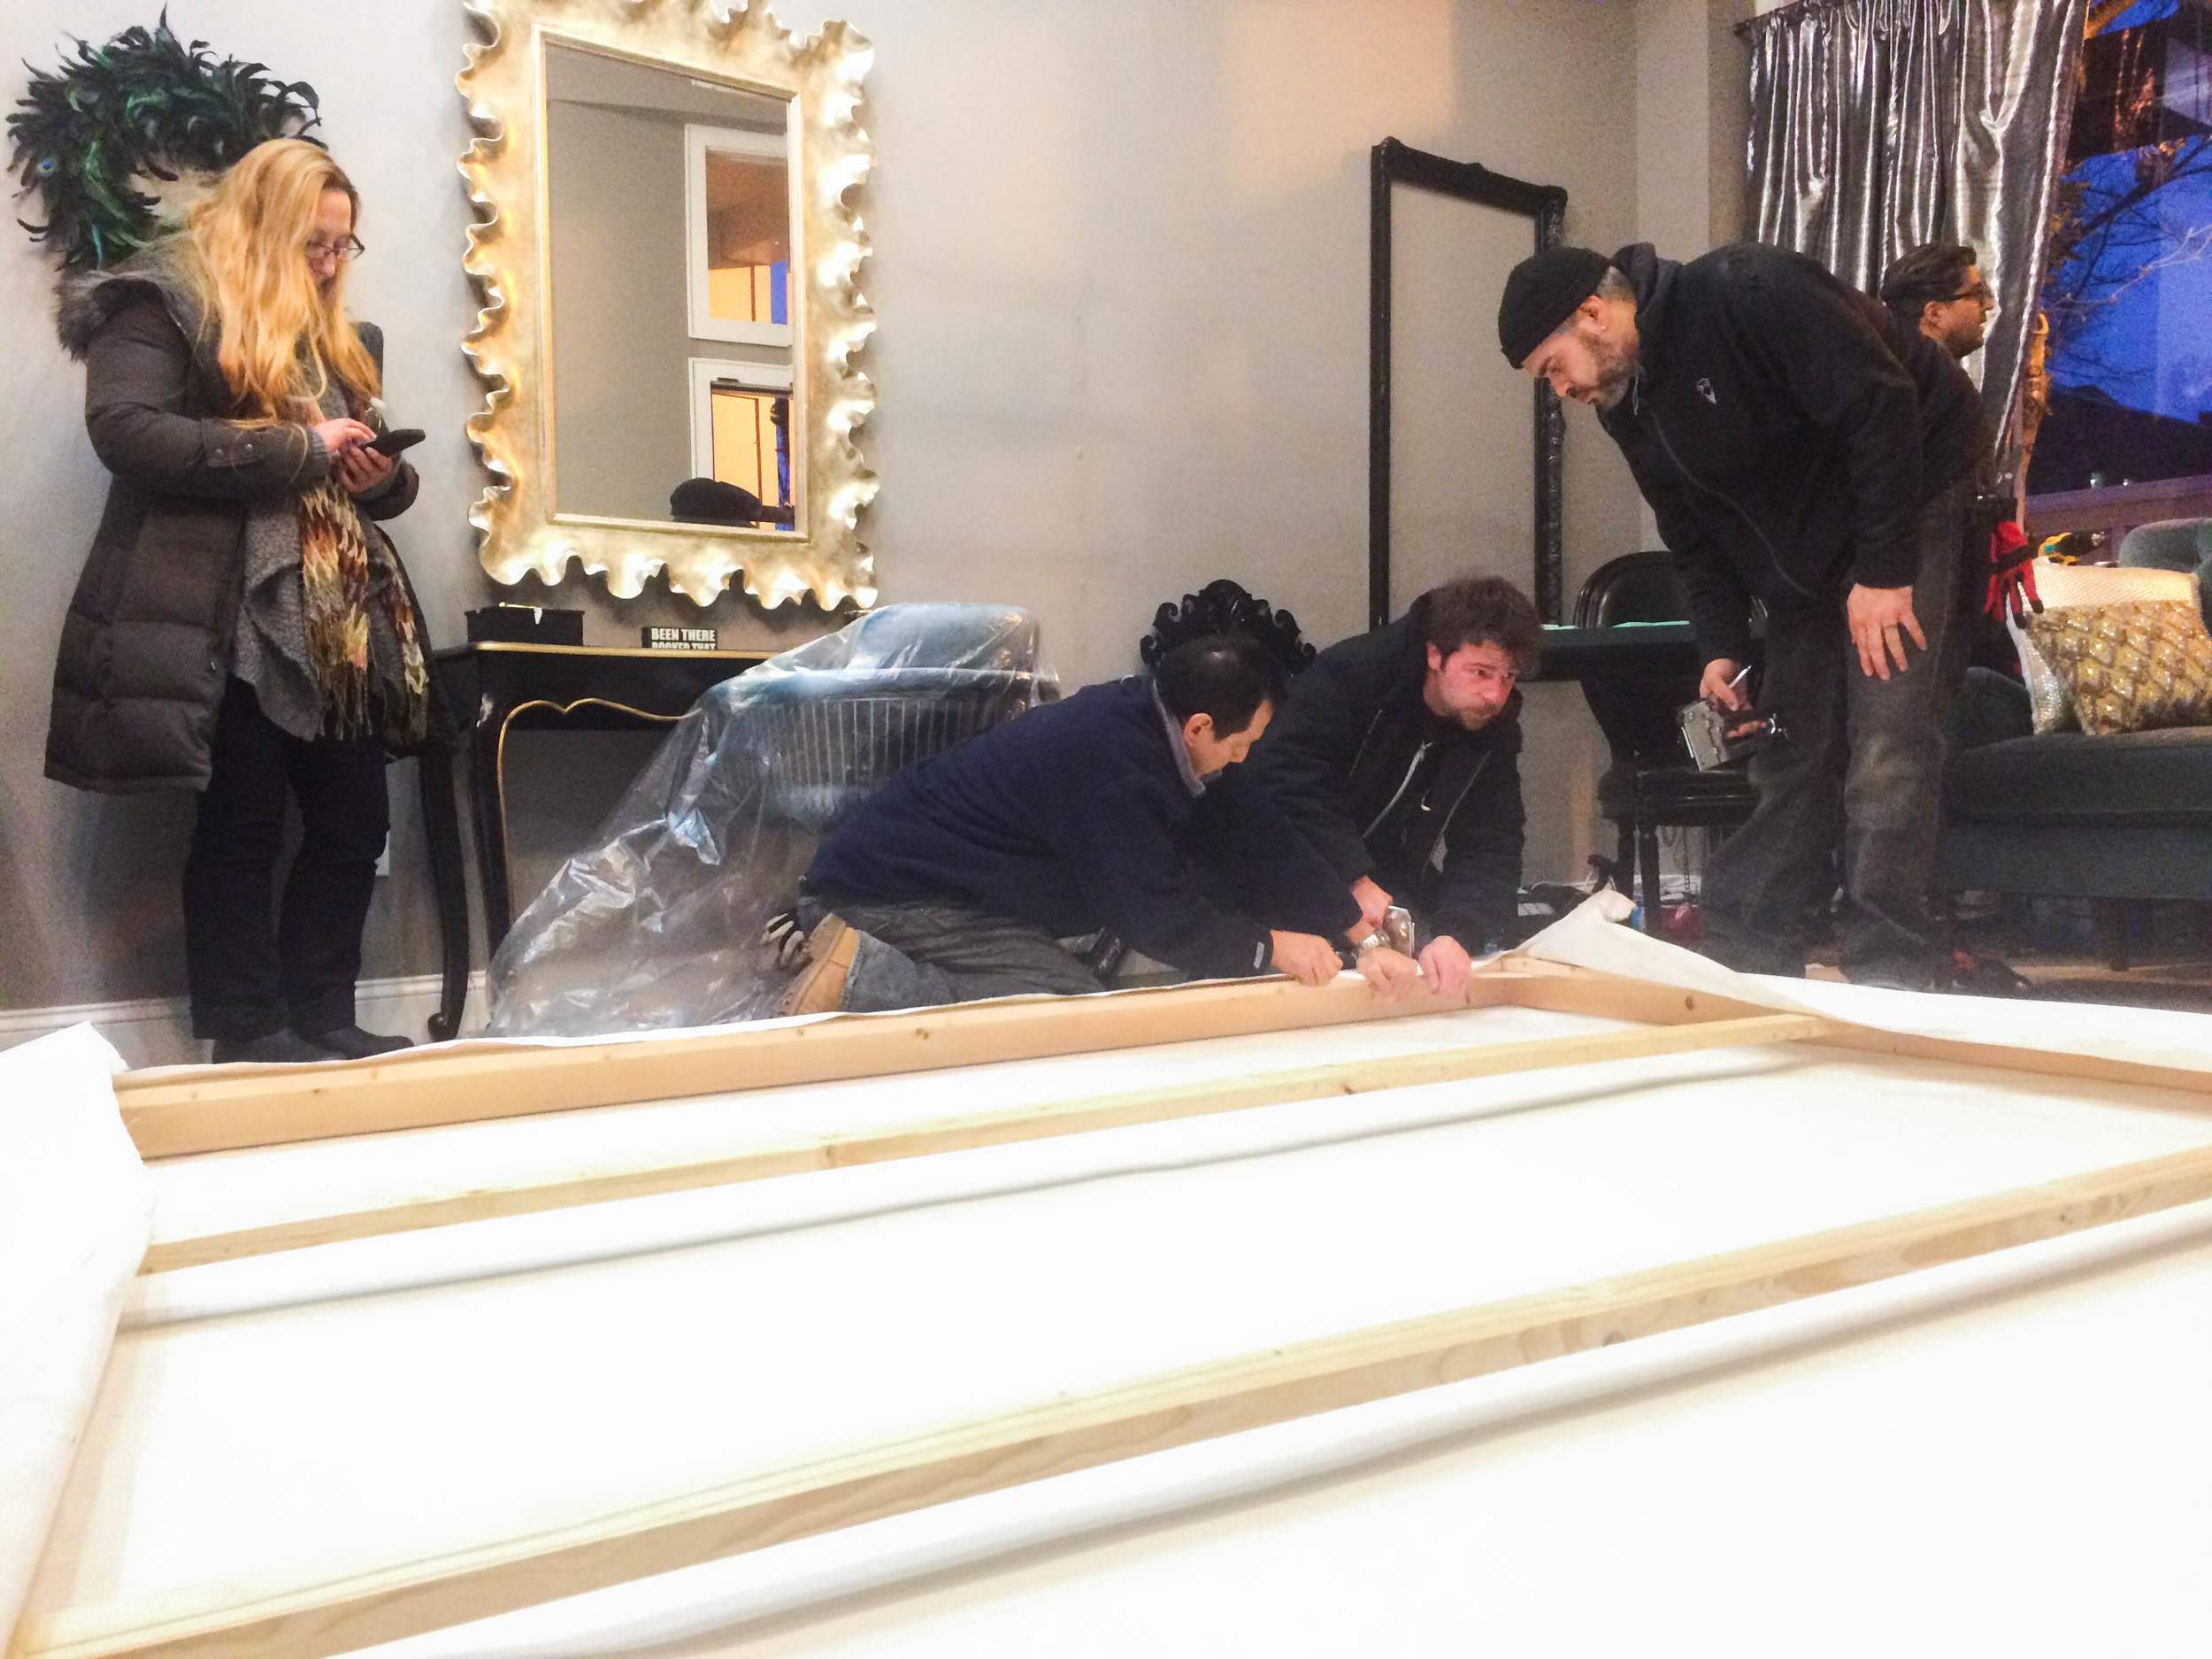 Set dressers worked last night to prepare Jon Megaris salon for its on-screen debut.